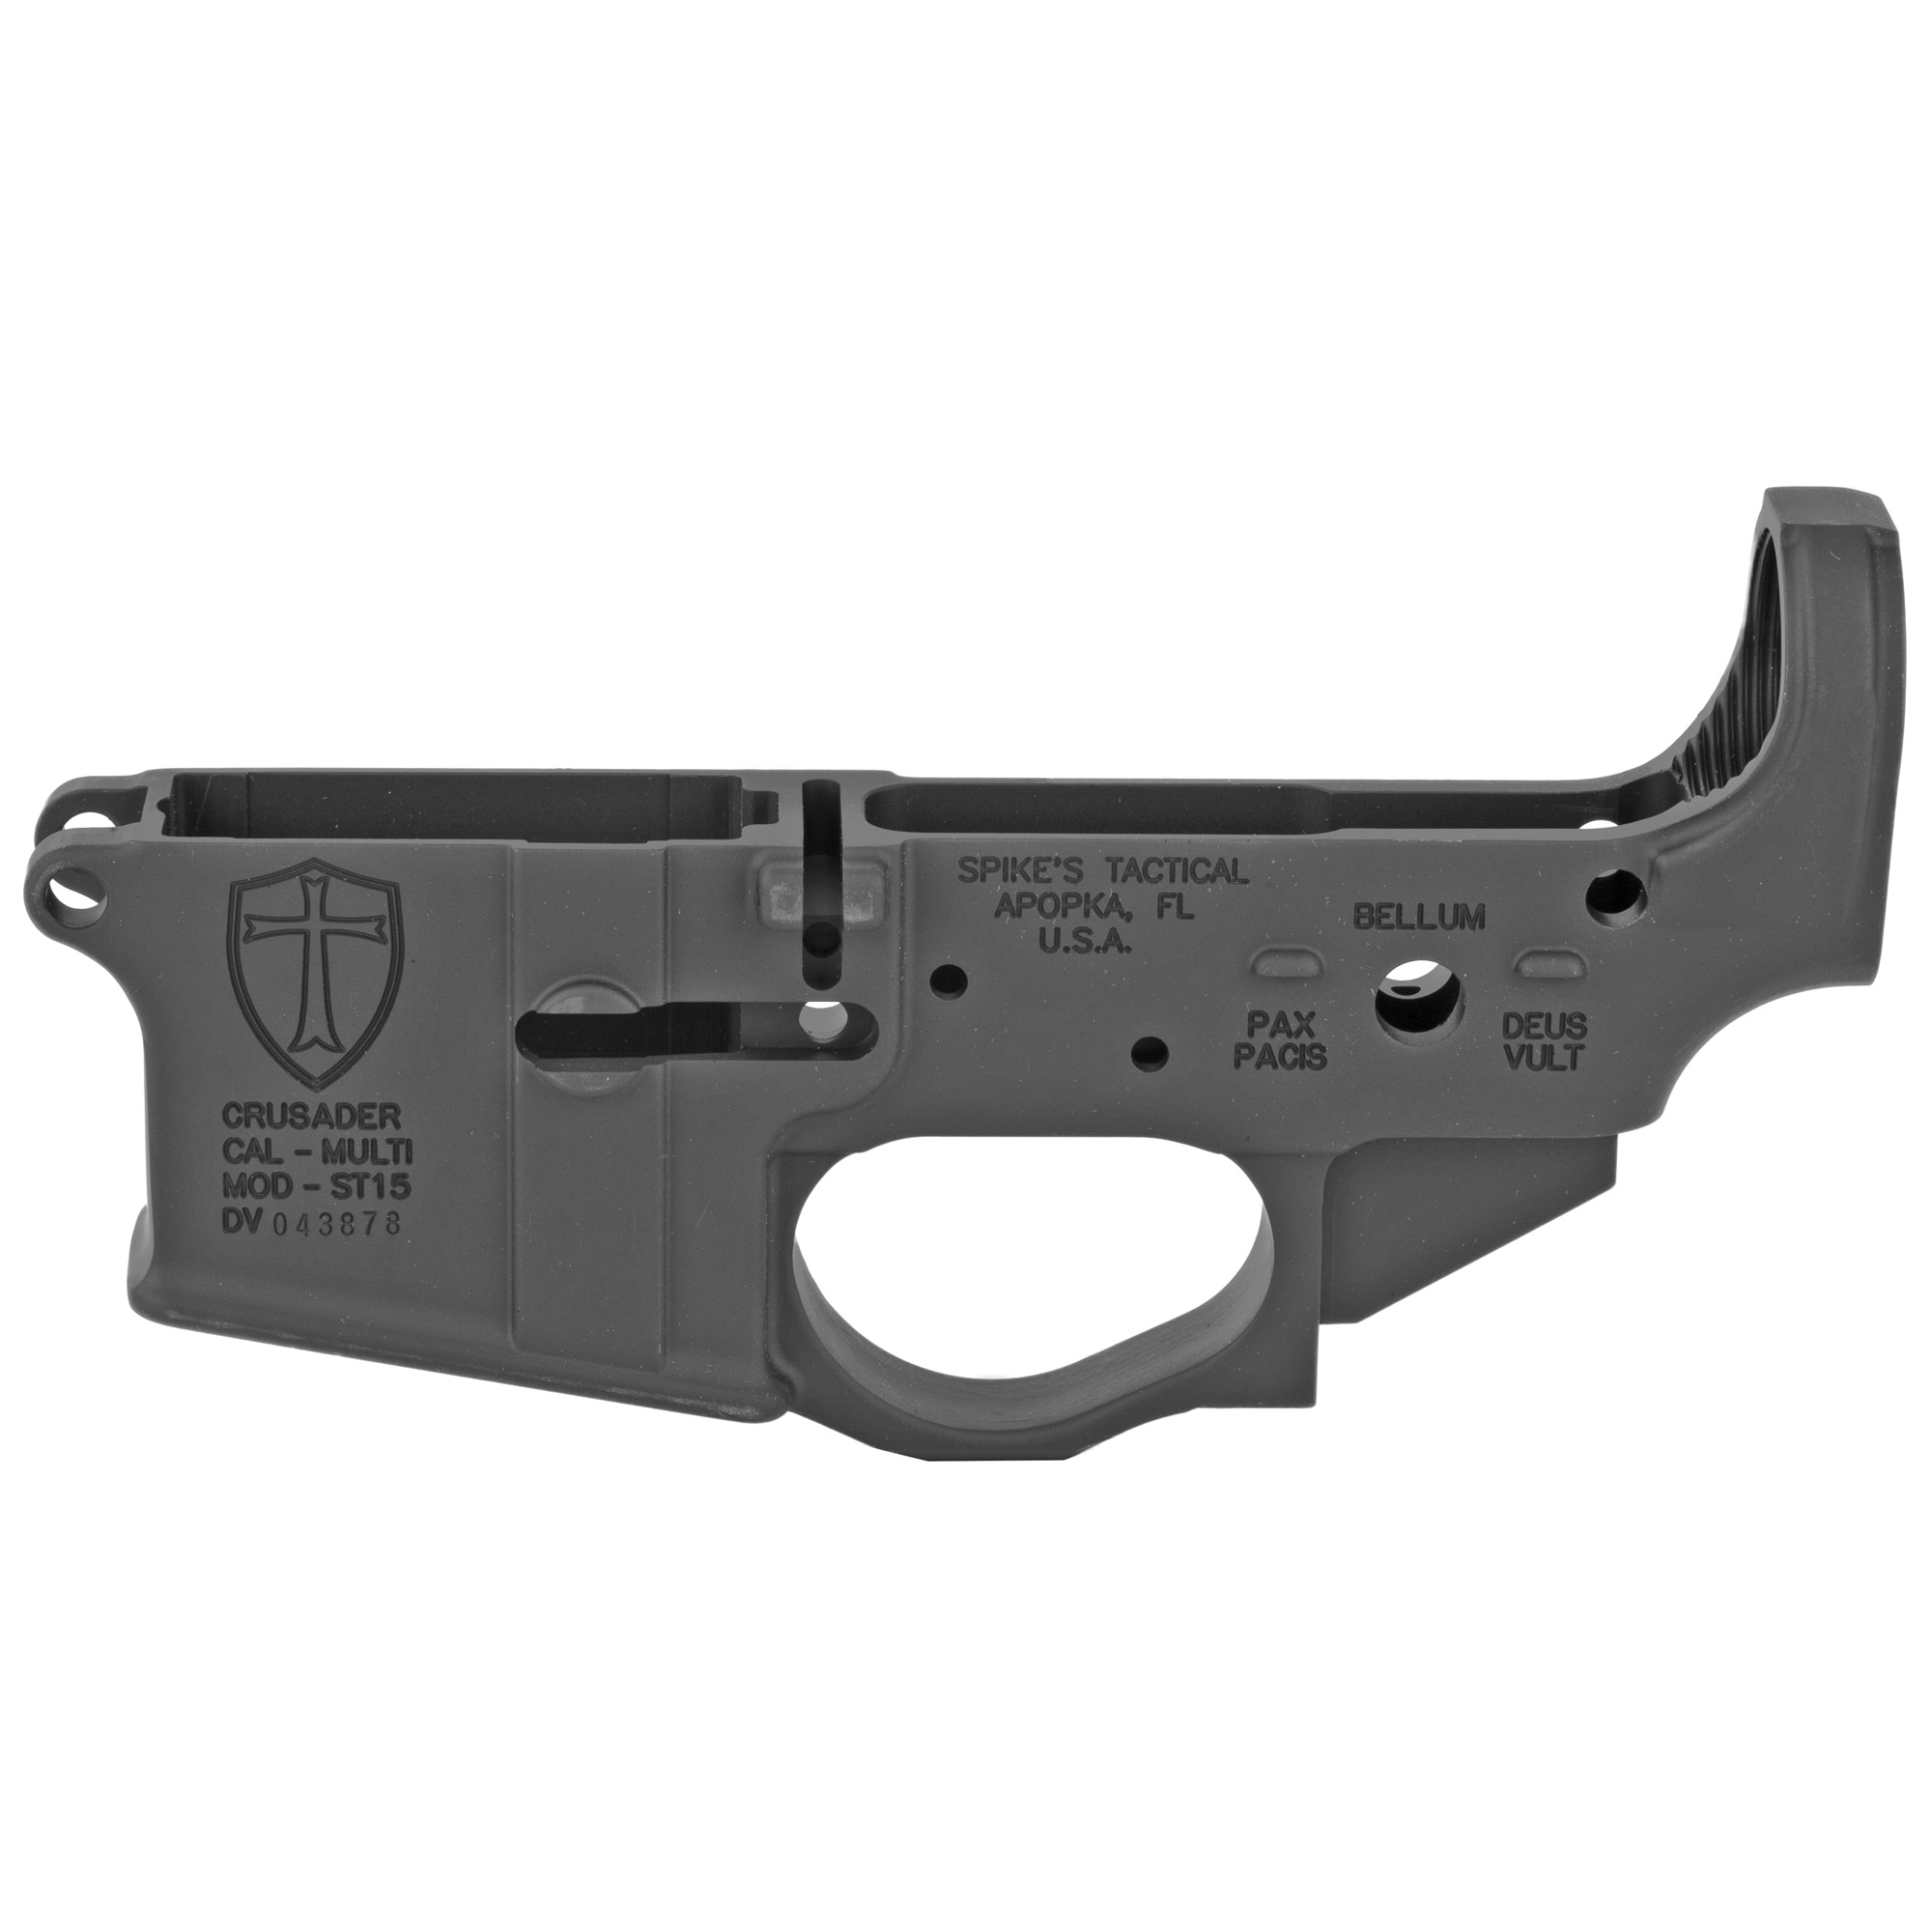 Spikes Stripped Lower (crusader)